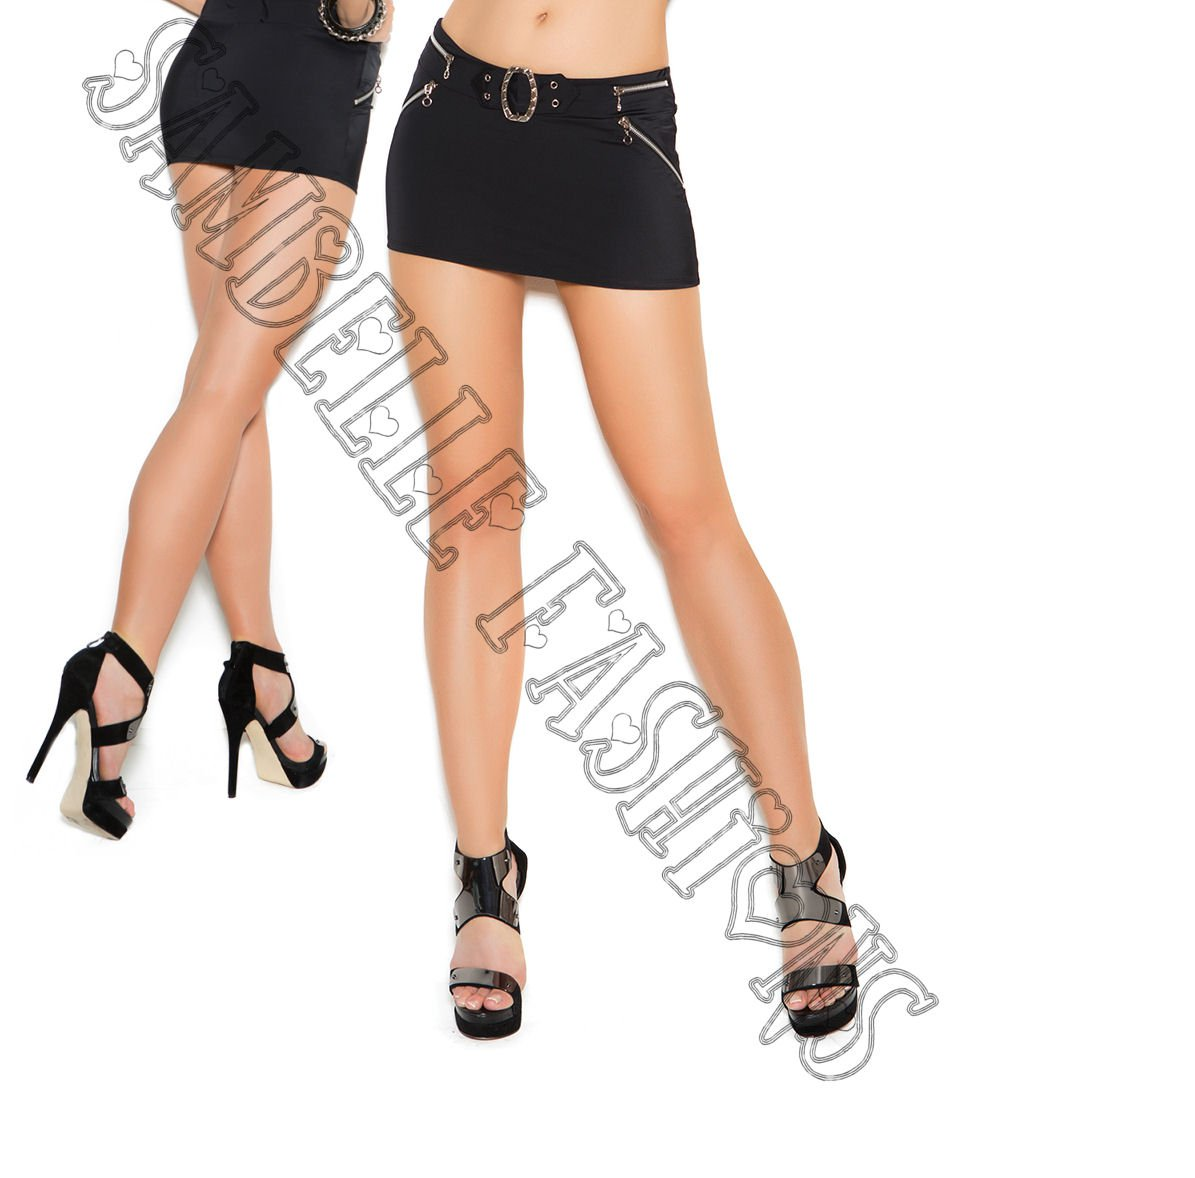 Black Lycra Mini Skirt w/ Buckle & Zippers - 2X